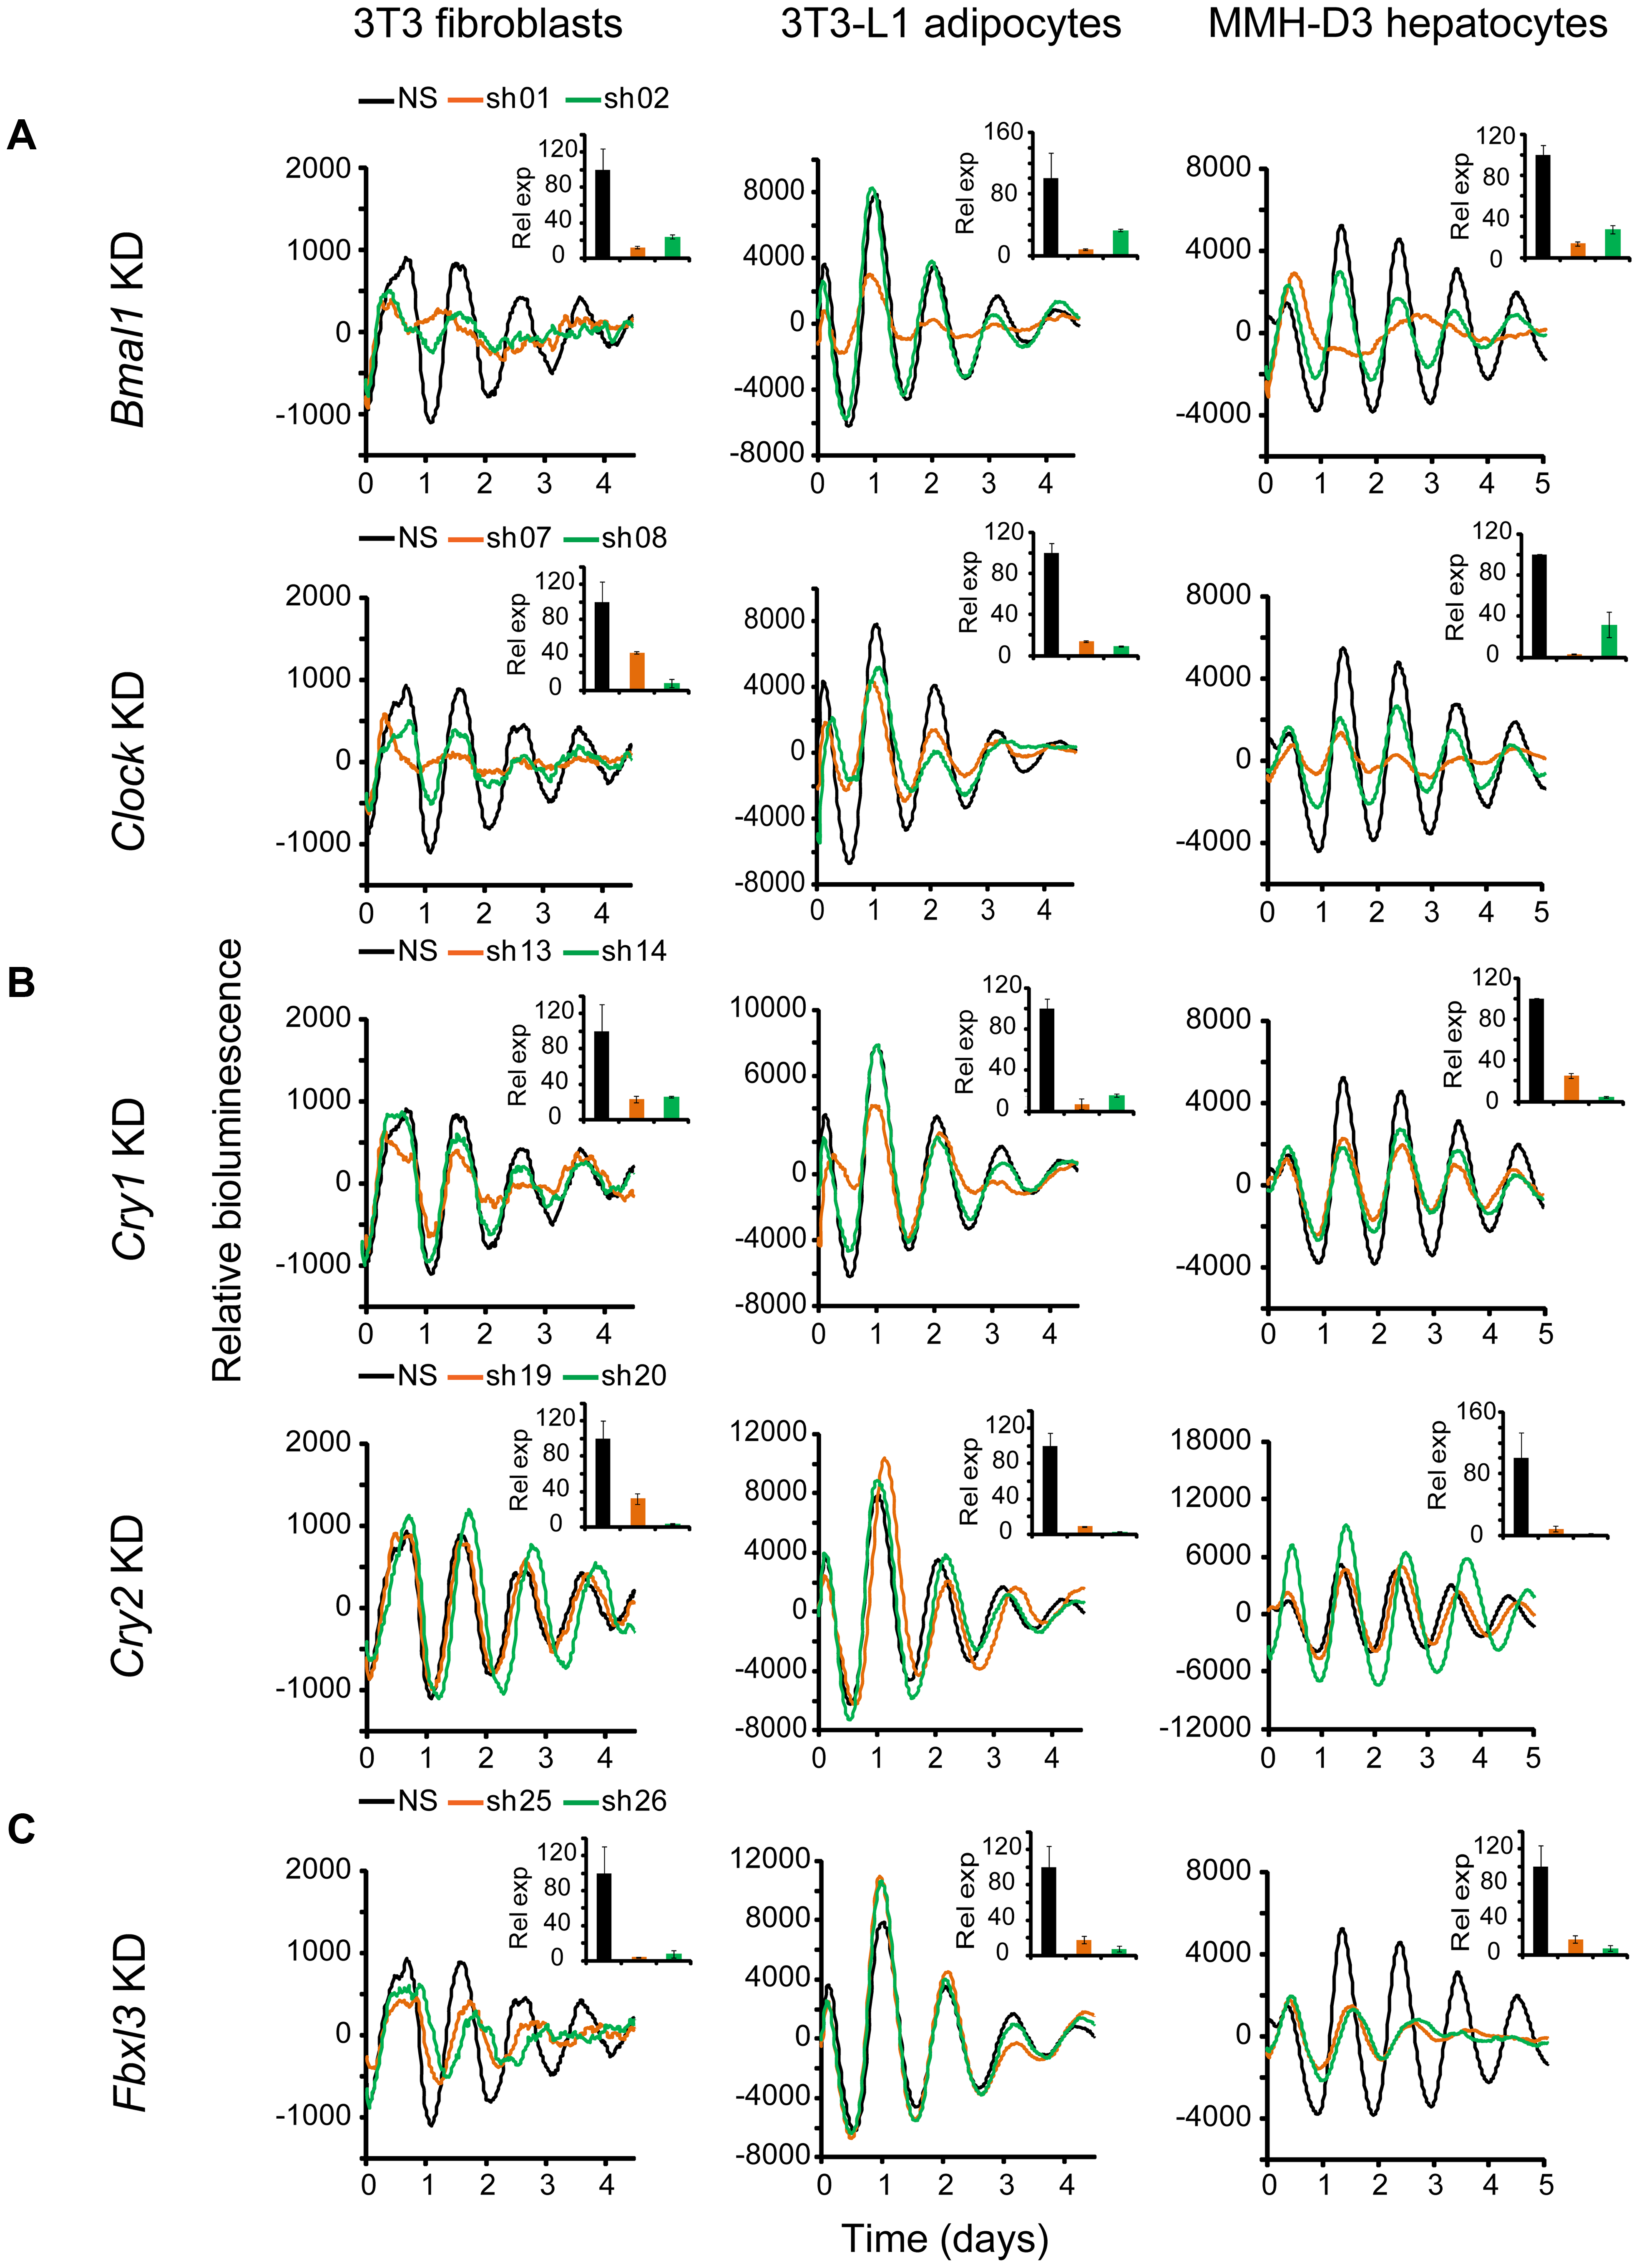 Knockdowns of <i>Bmal1</i>, <i>Clock</i>, <i>Cry1</i>, <i>Cry2</i>, and <i>Fbxl3</i> lead to cell type-ubiquitous circadian phenotypes.